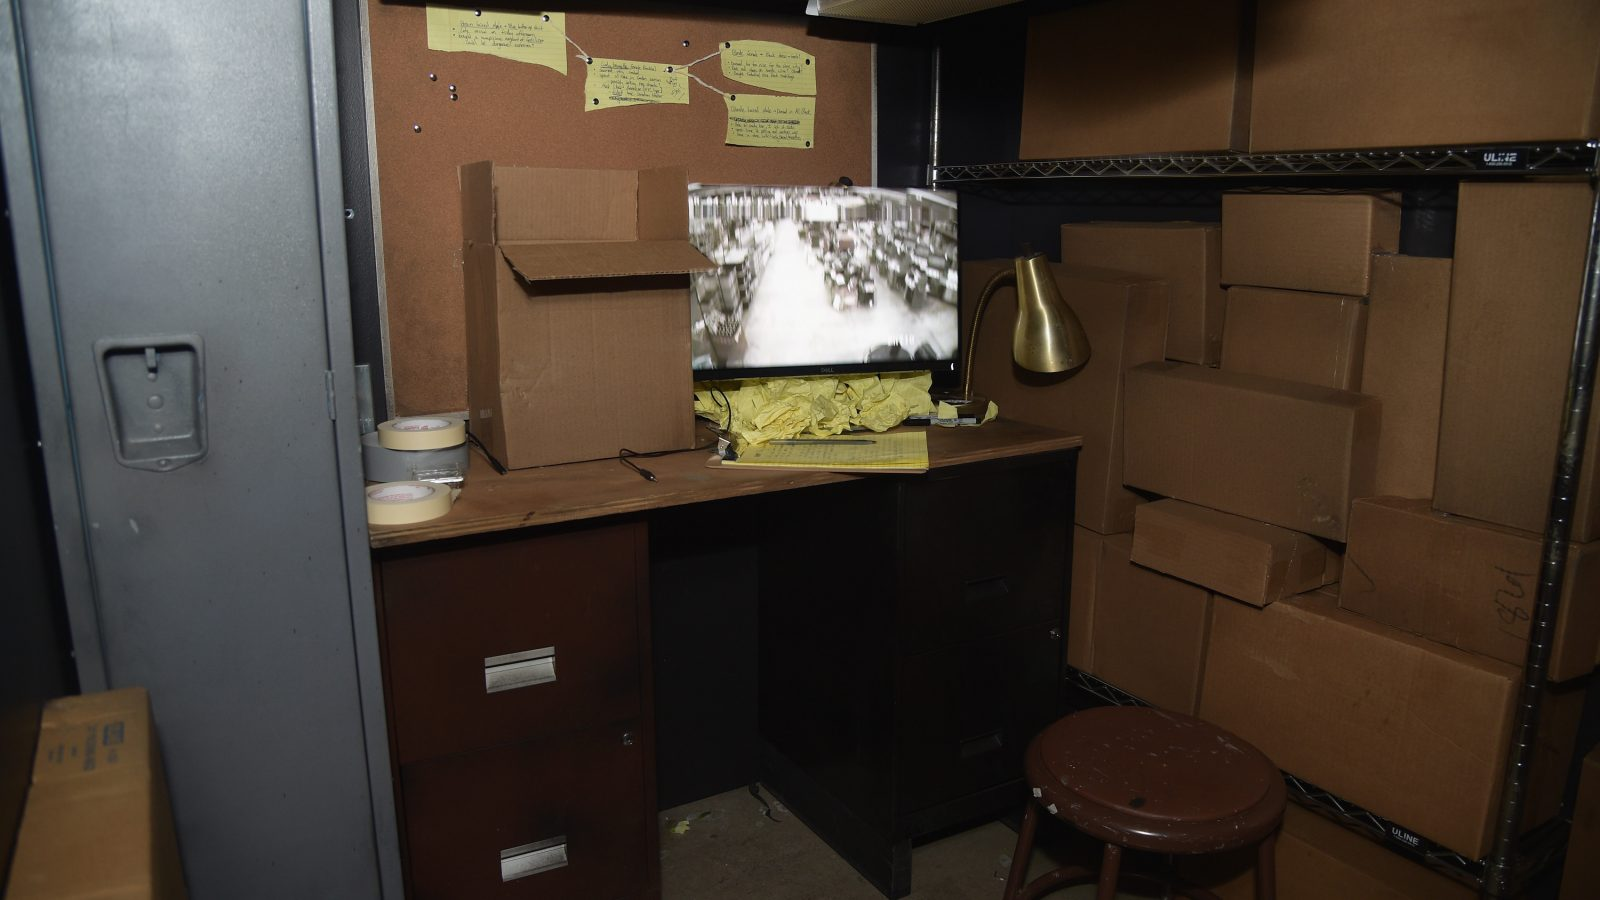 A store room full of boxes with a computer screen showing CCTV.